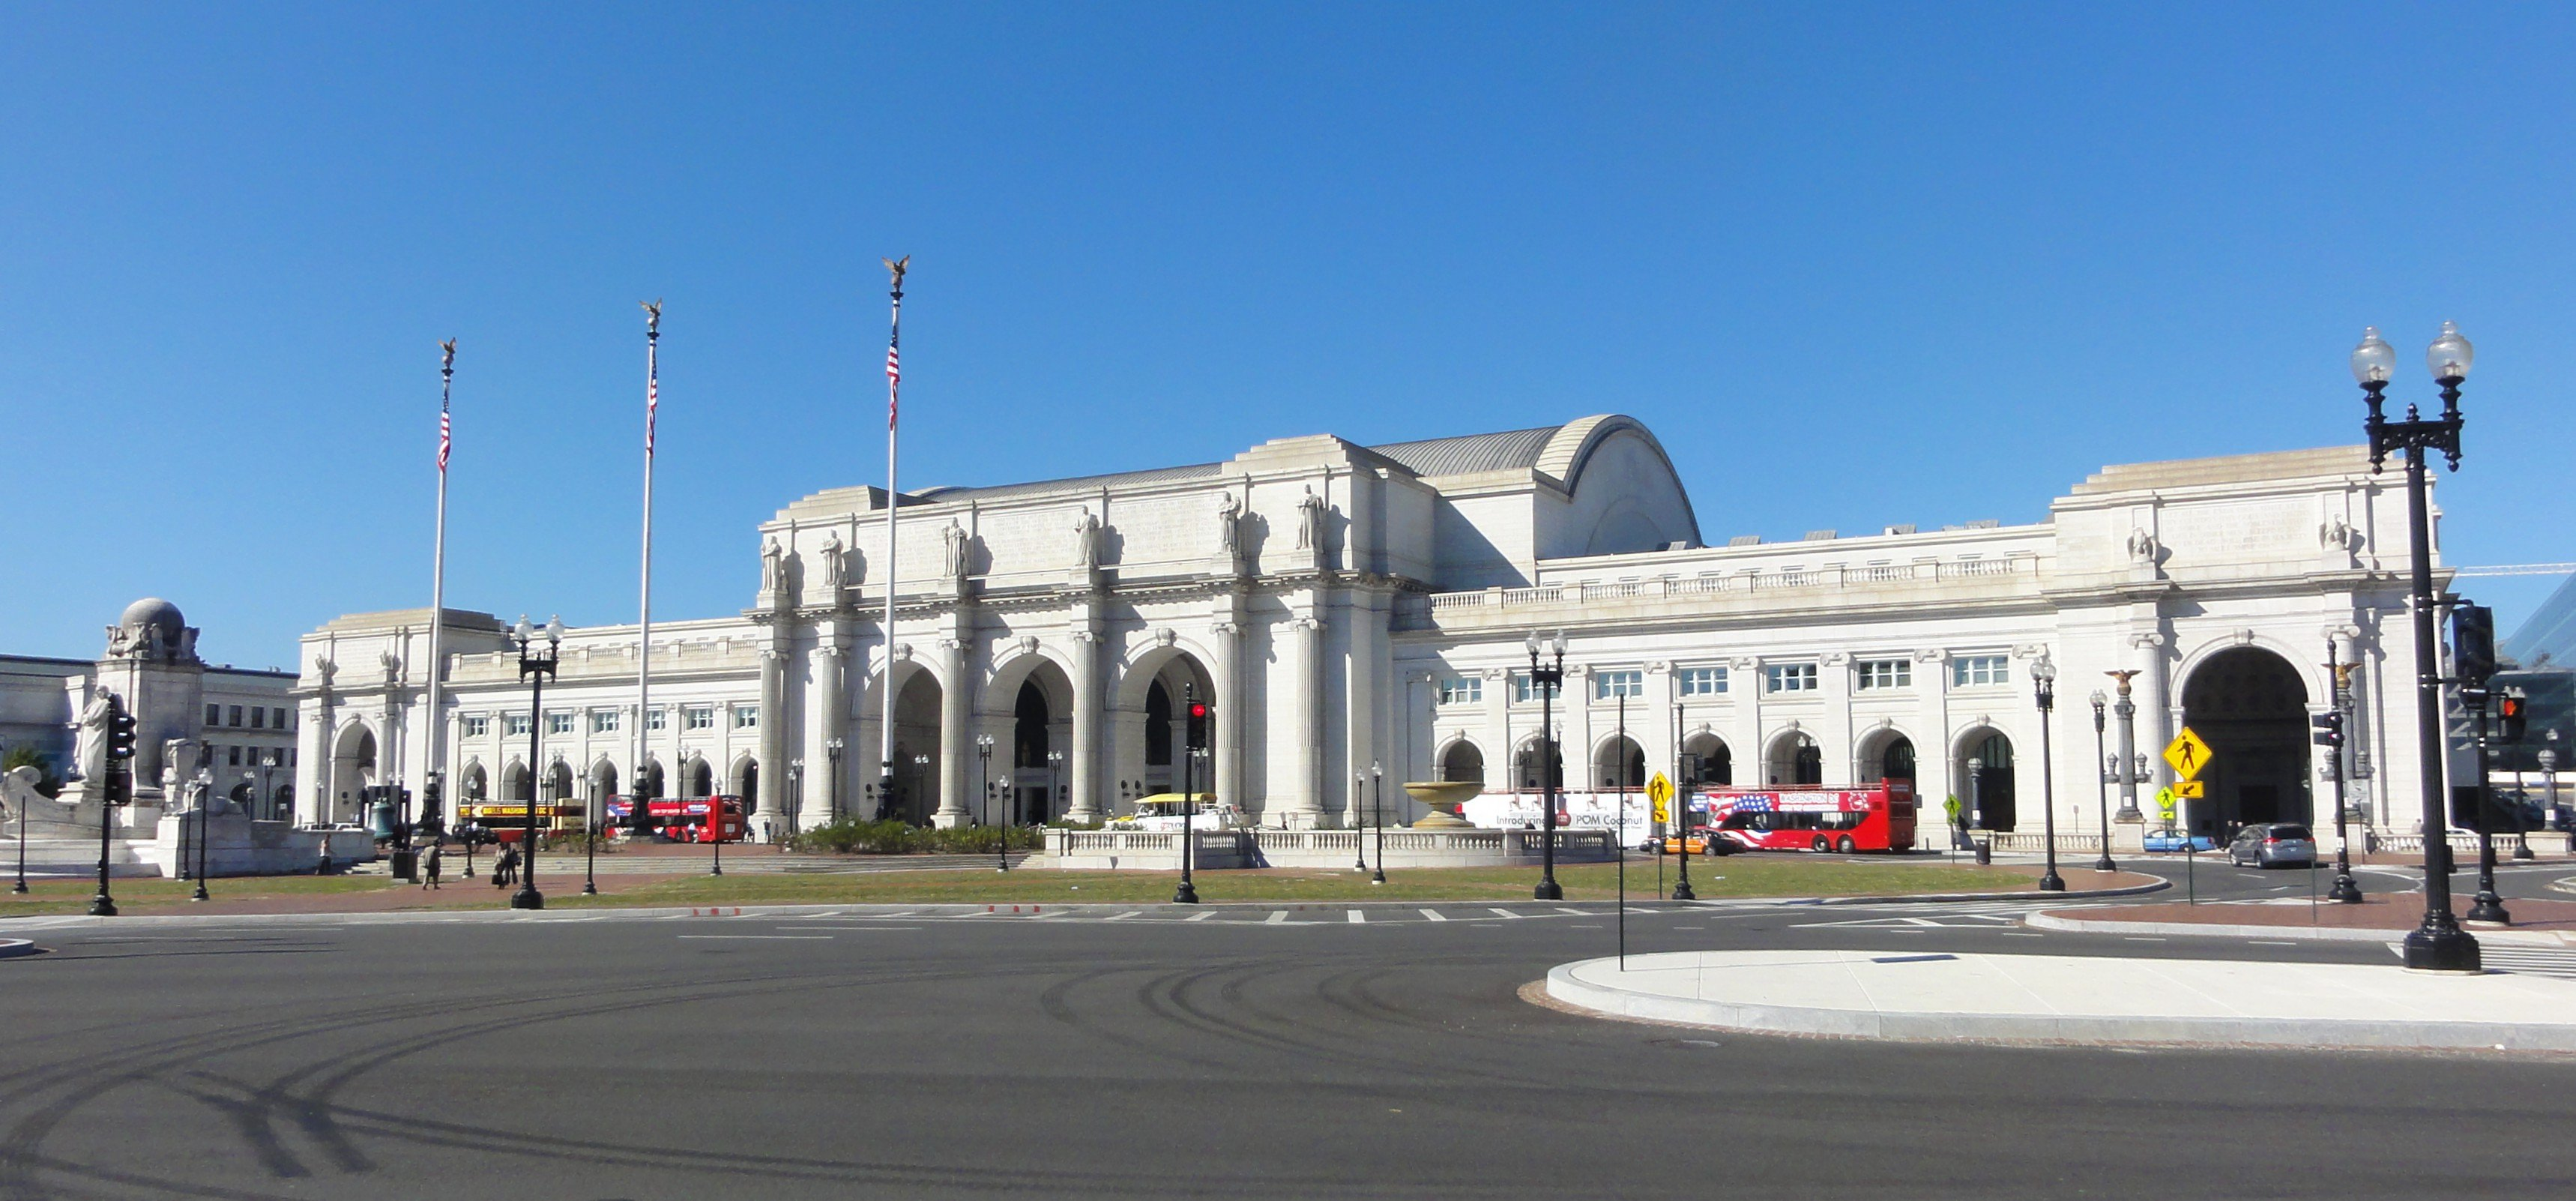 A landscape photo of Union Station (Washington, D.C.). Opened in 1907, it is Amtrak's headquarters and the railroad's second-busiest station, with annual ridership of over 5 million.[6] The station also serves MARC and VRE commuter rail services, the Washington Metro, and buses.